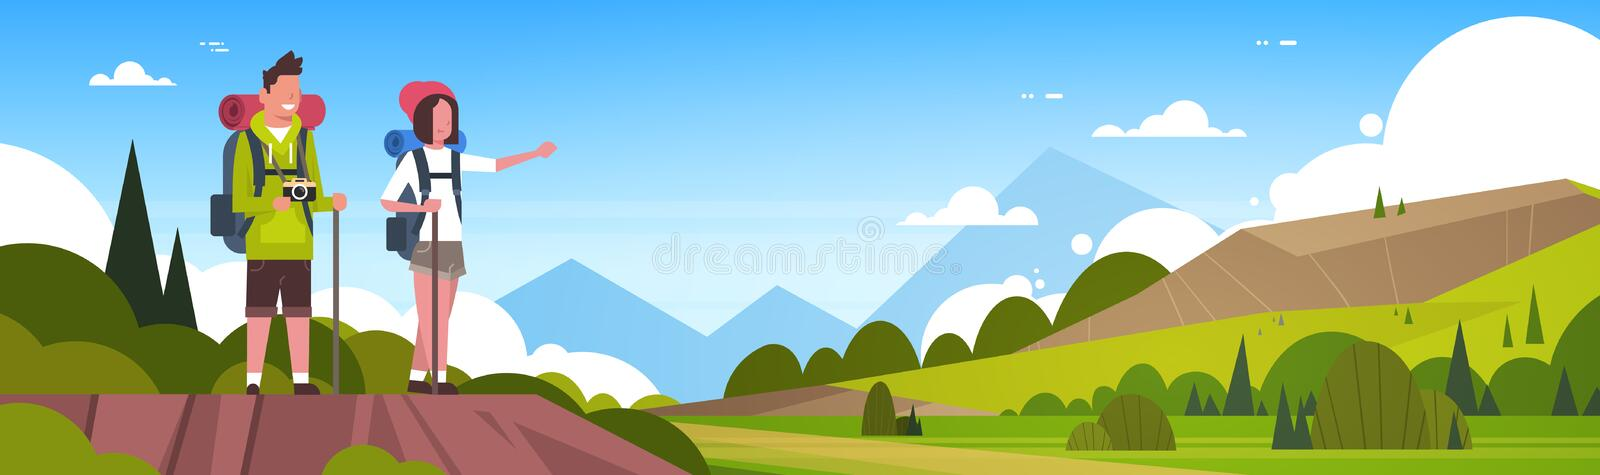 Man And Woman Tourists With Backpacks Over Beautiful Nature Landscape Background Couple Hiking Horizontal Banner royalty free illustration